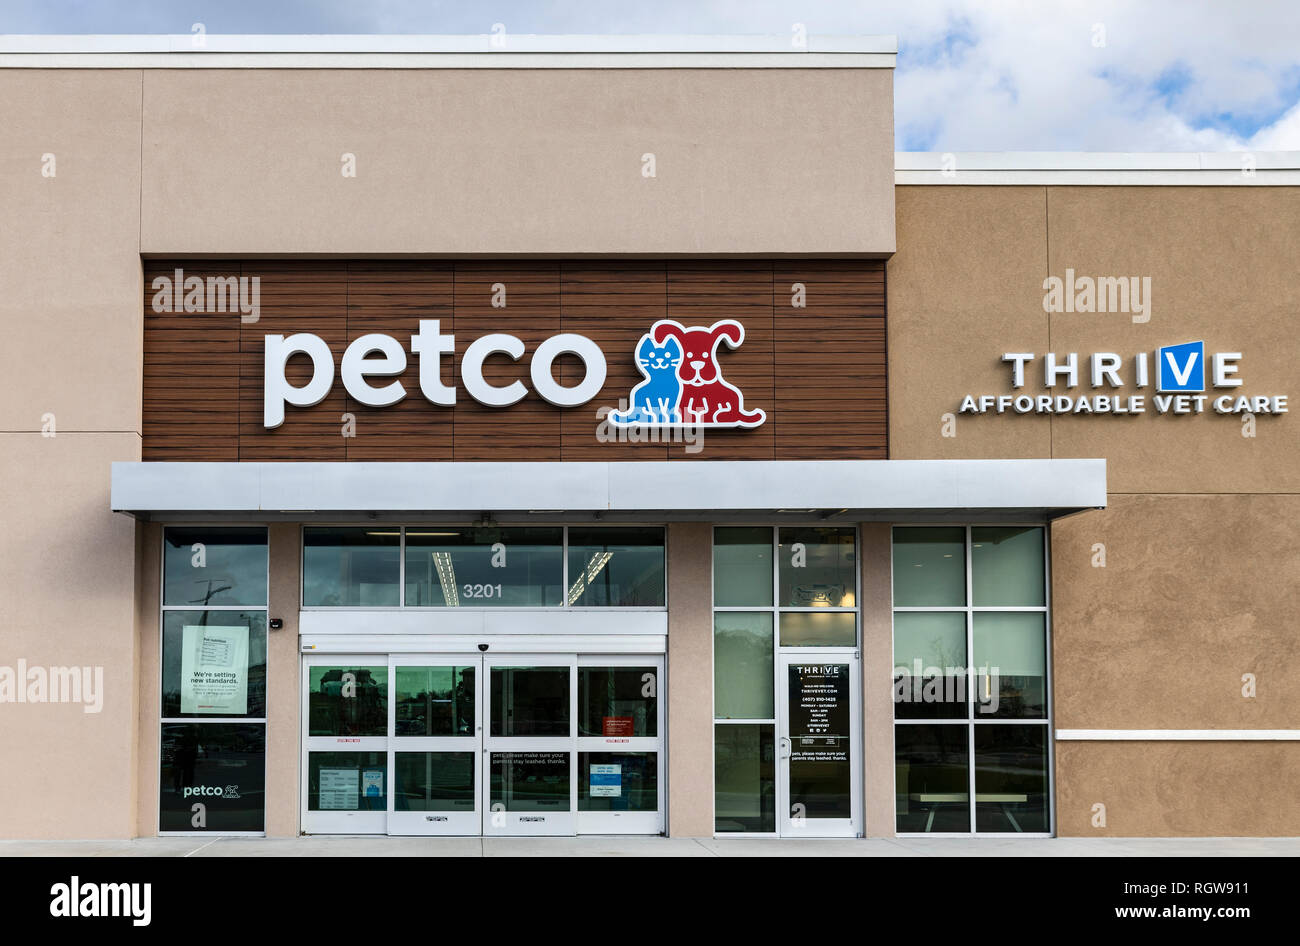 Pet Supplies Store High Resolution Stock Photography And Images Alamy